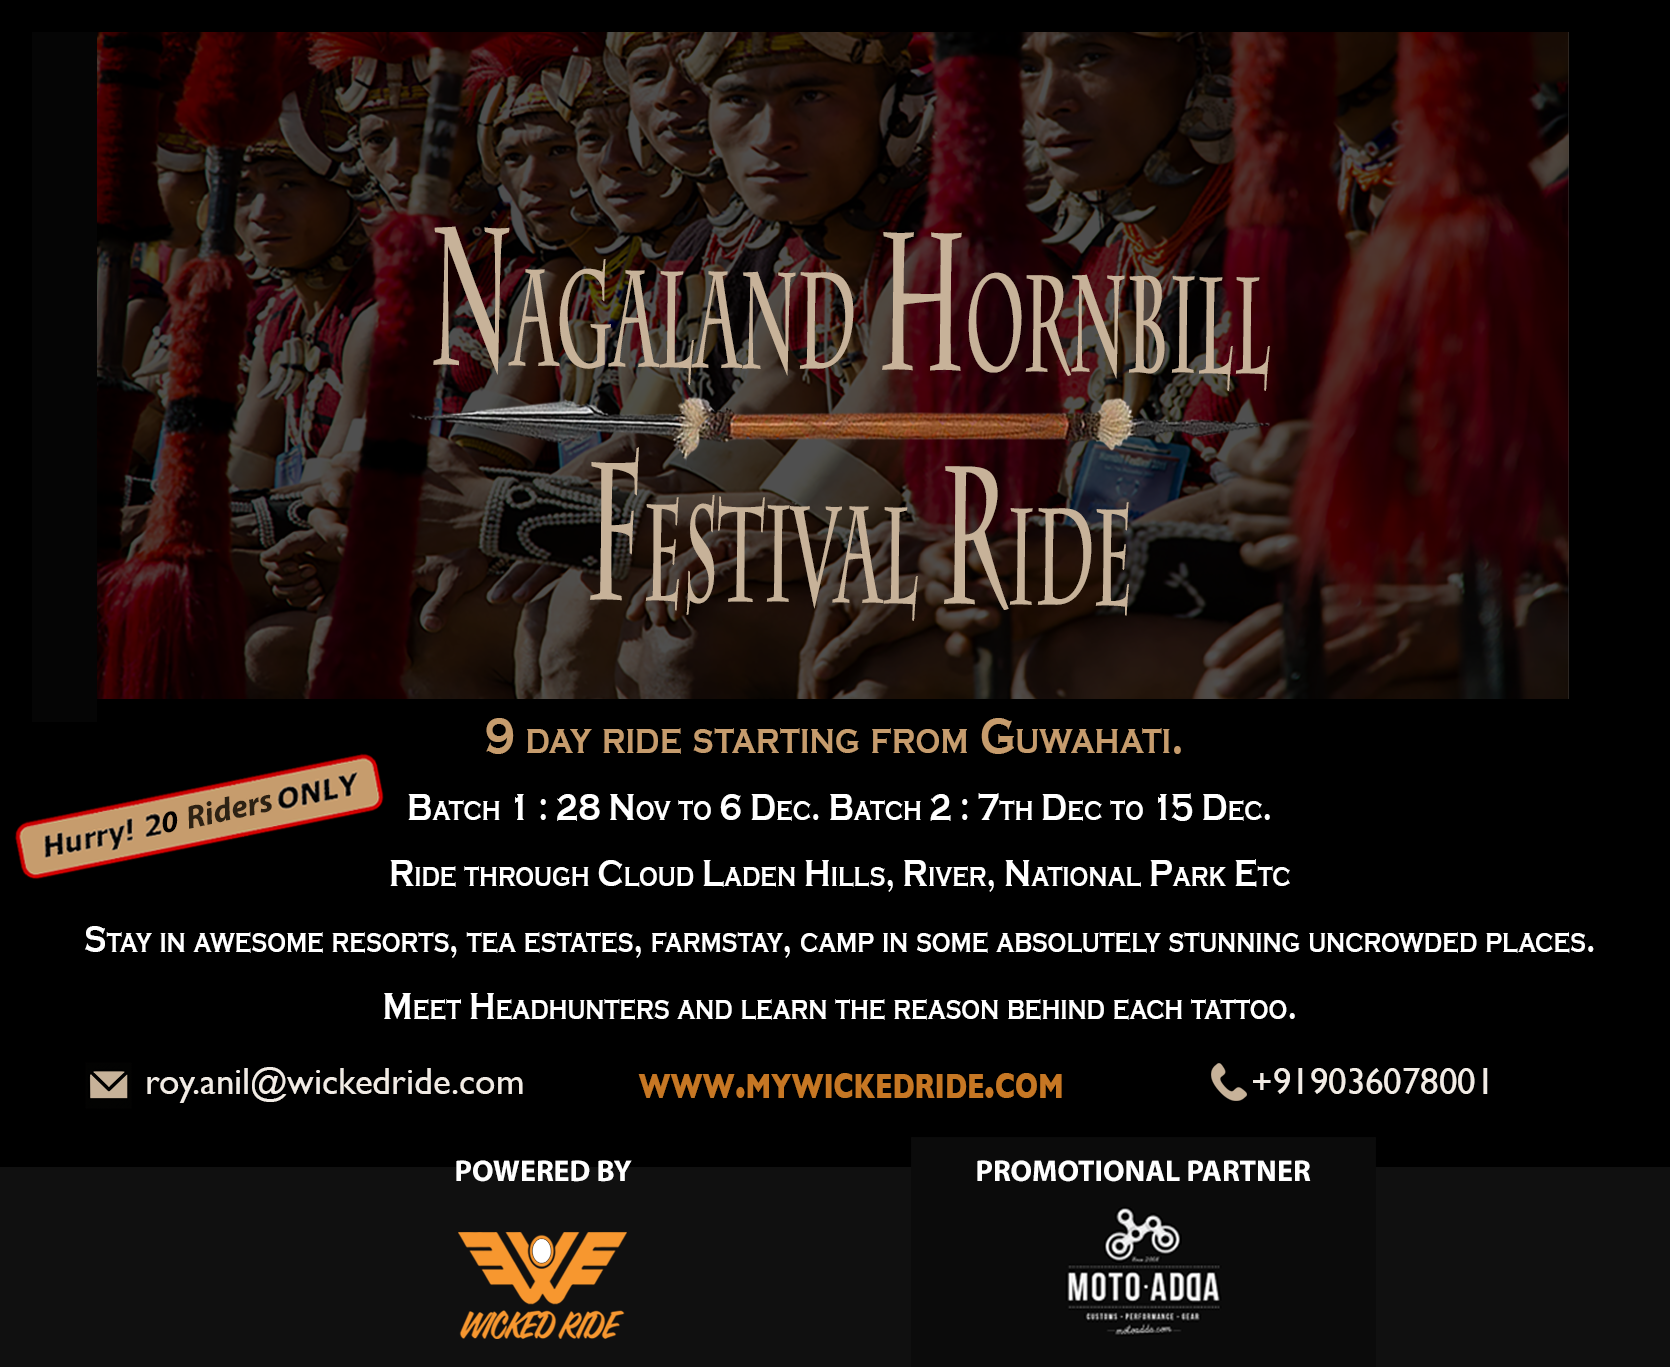 A 9-day ride, exploring Nagaland and everything it has to offer